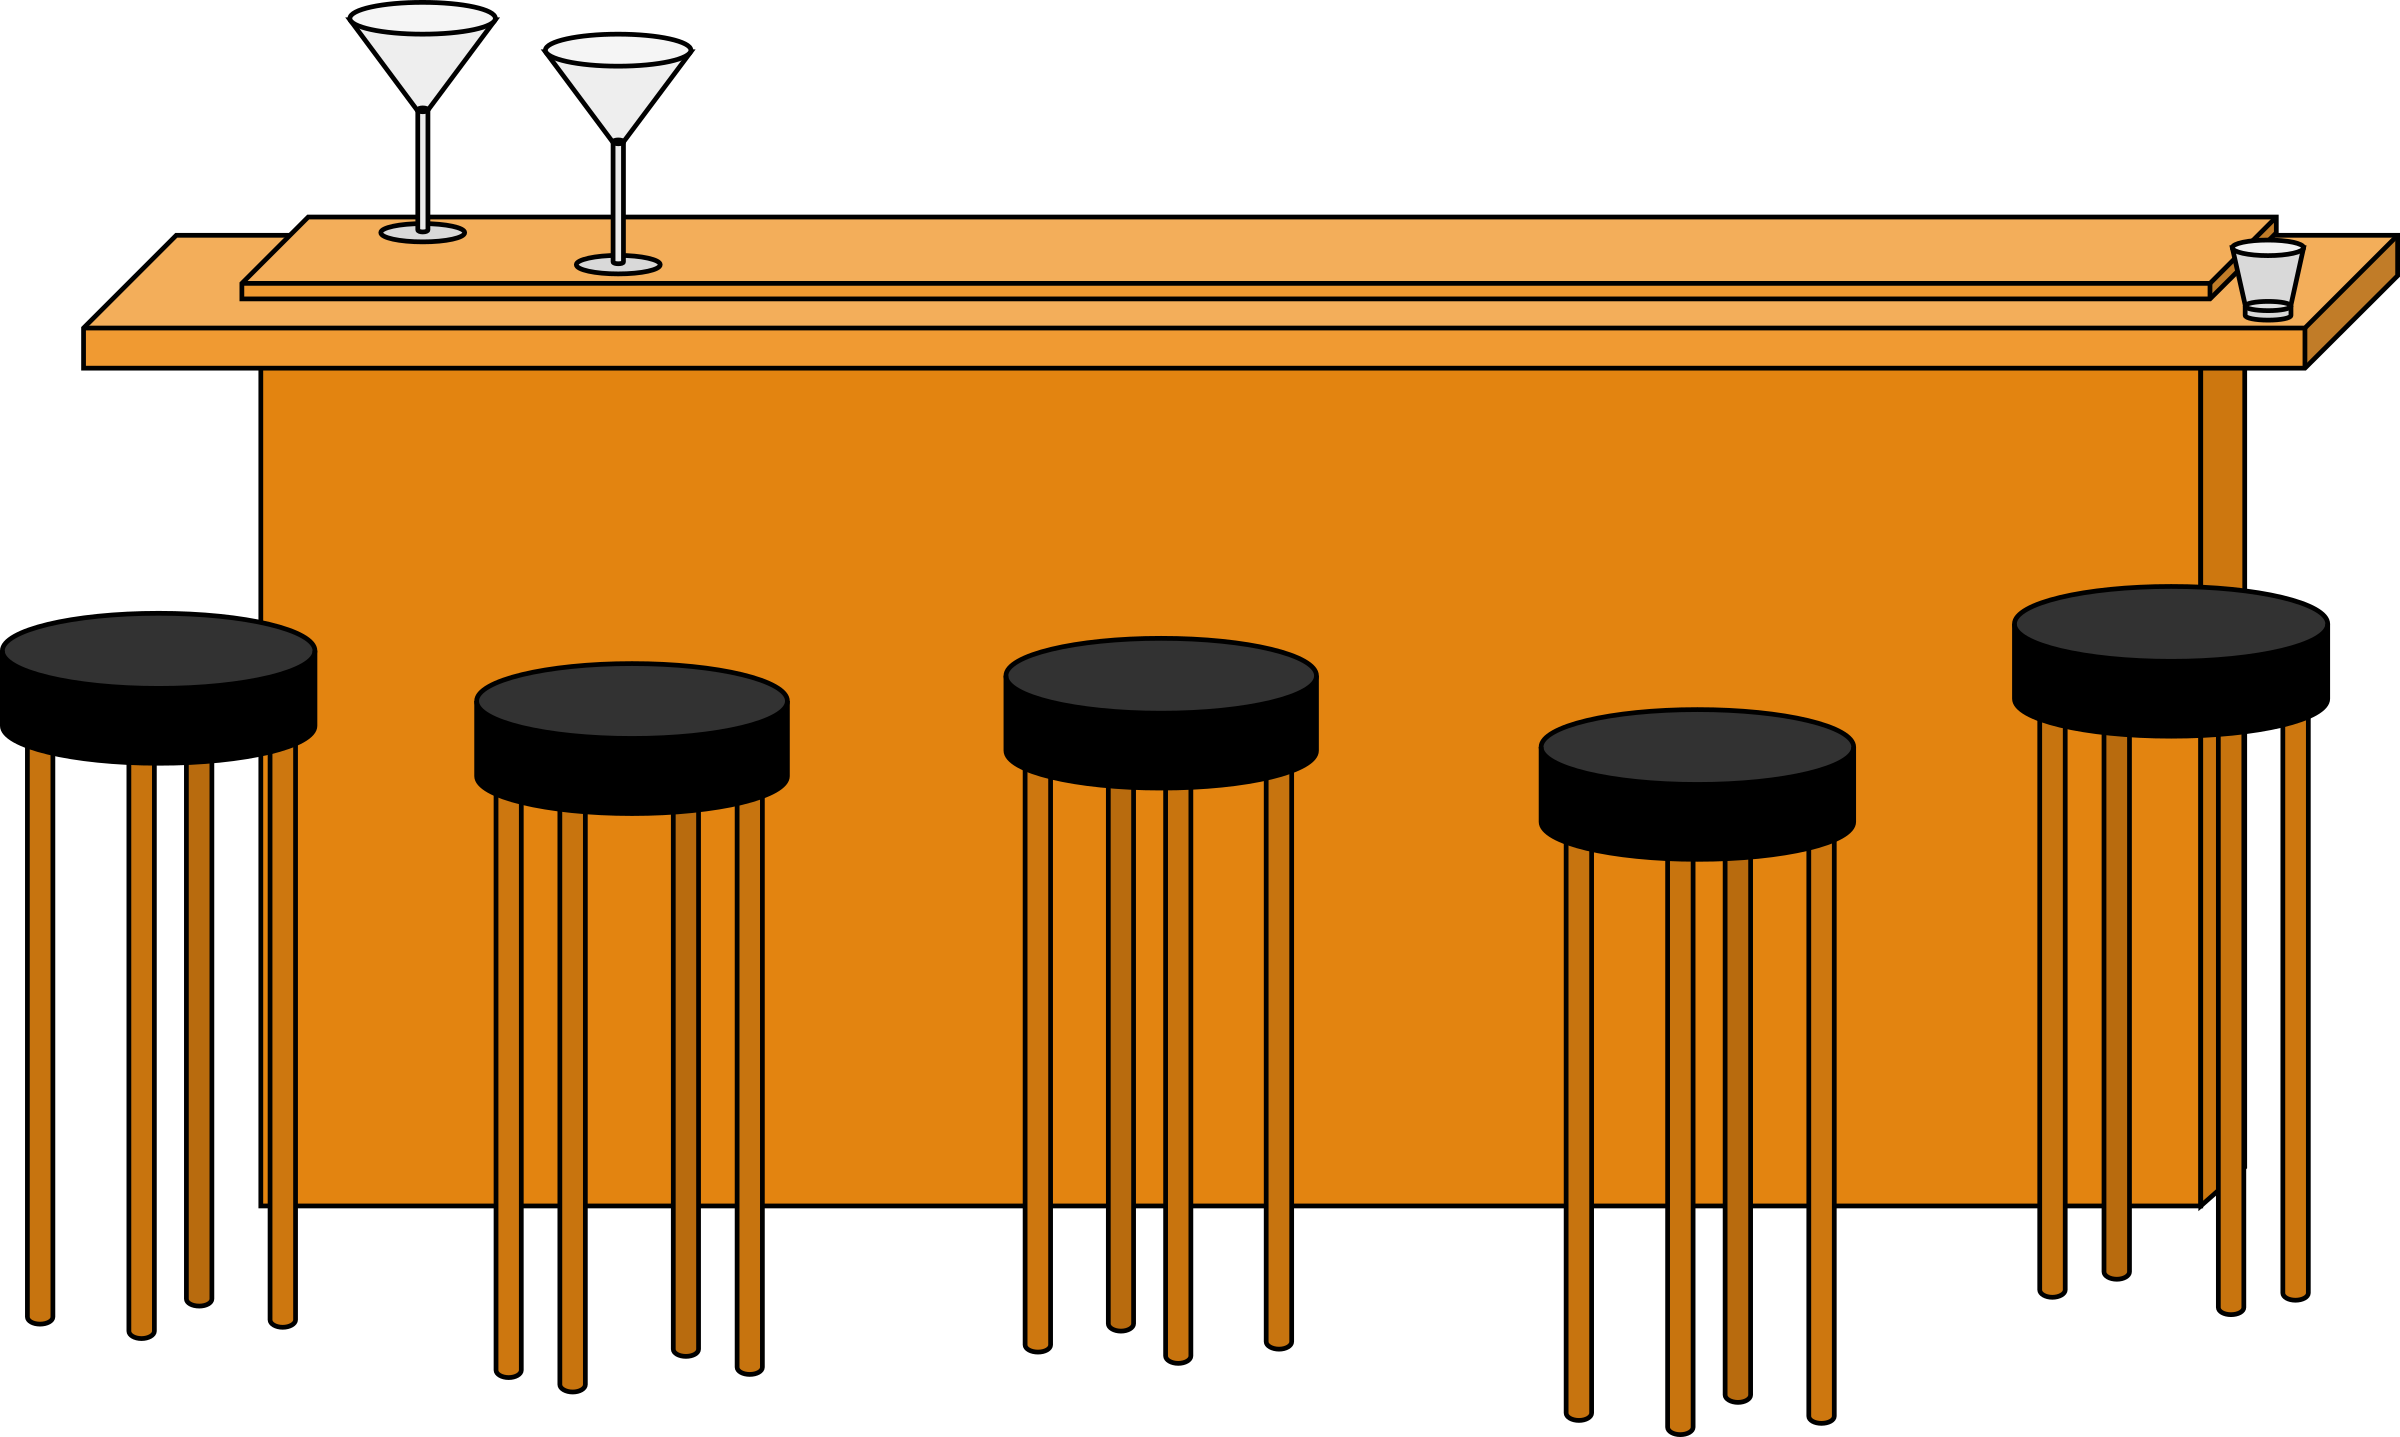 Bar clipart transparent. With stools icons png